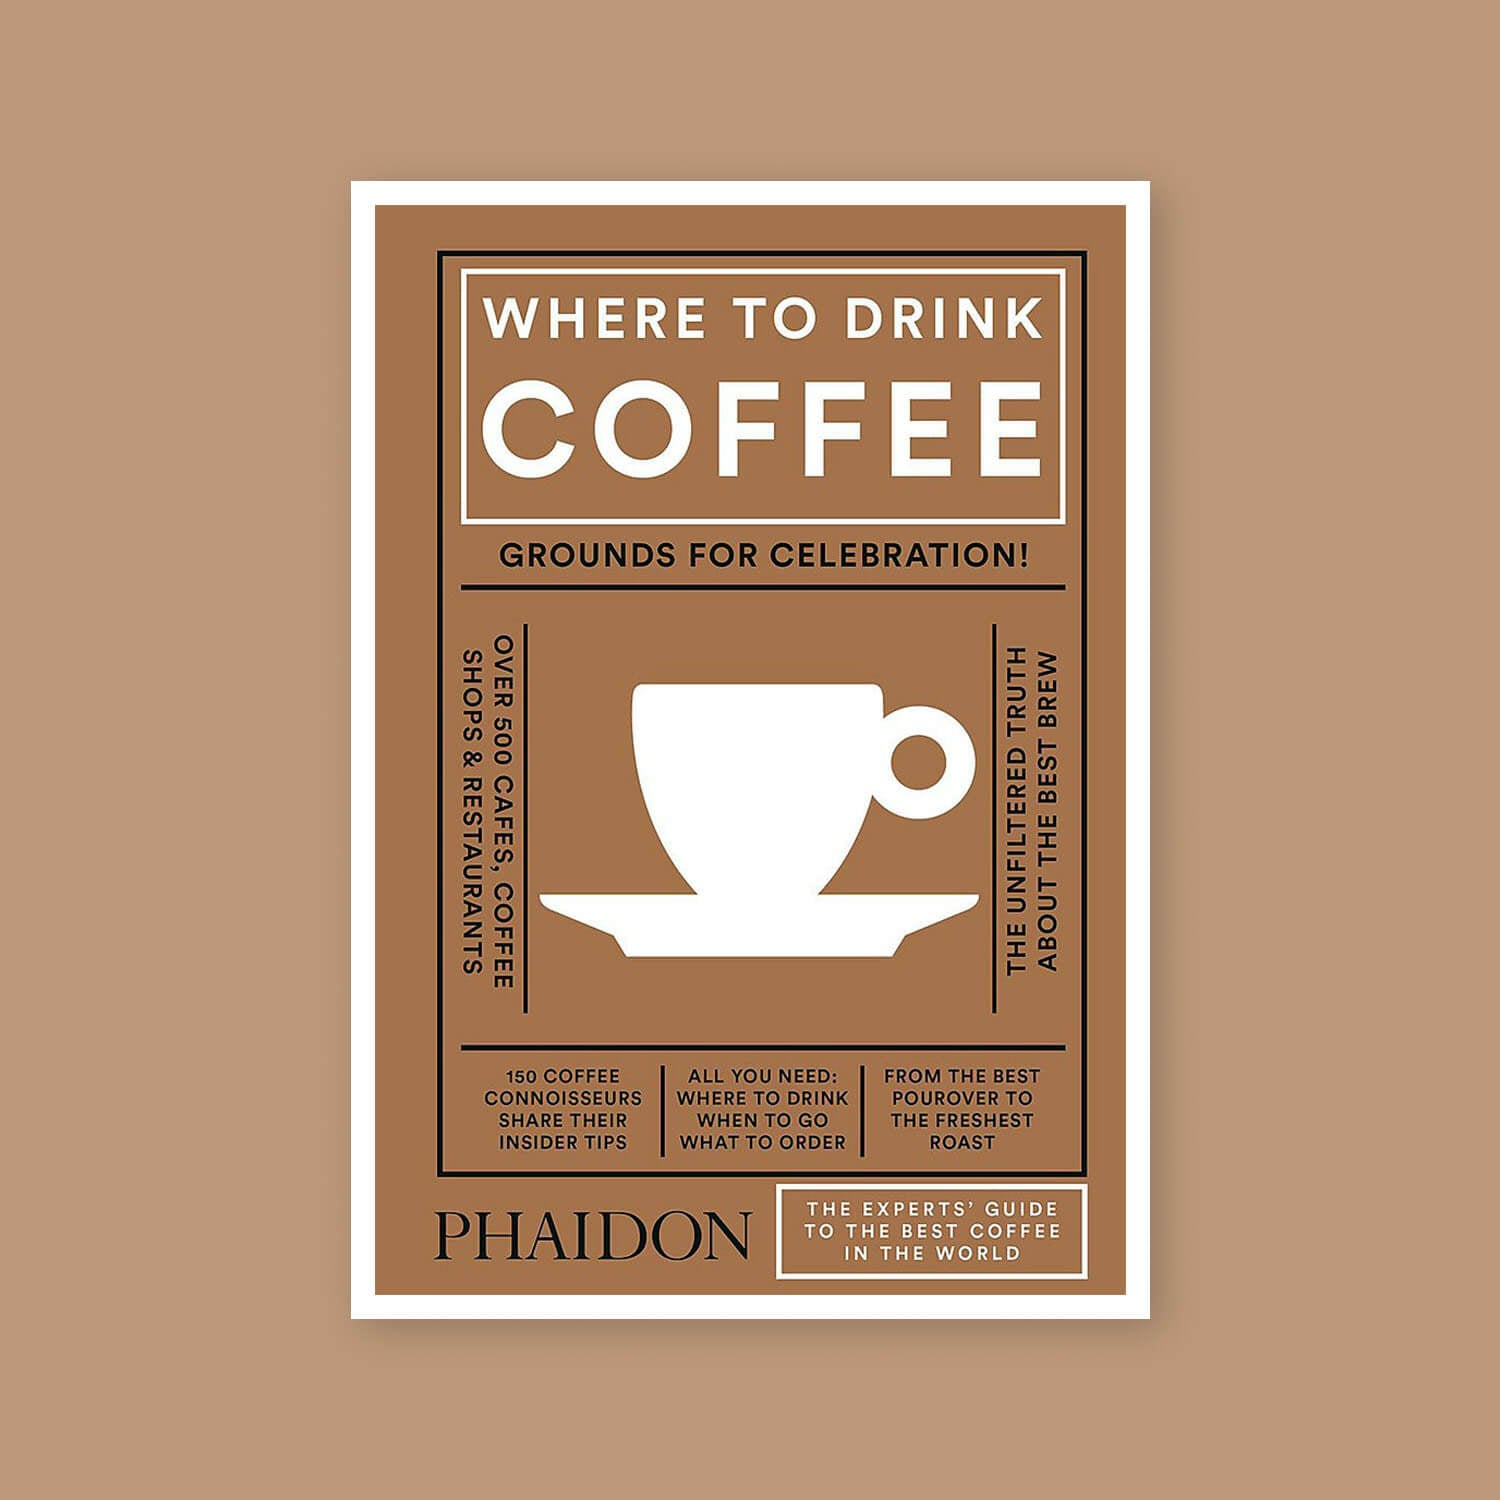 Where to Drink Coffee - Goldleaf Book List